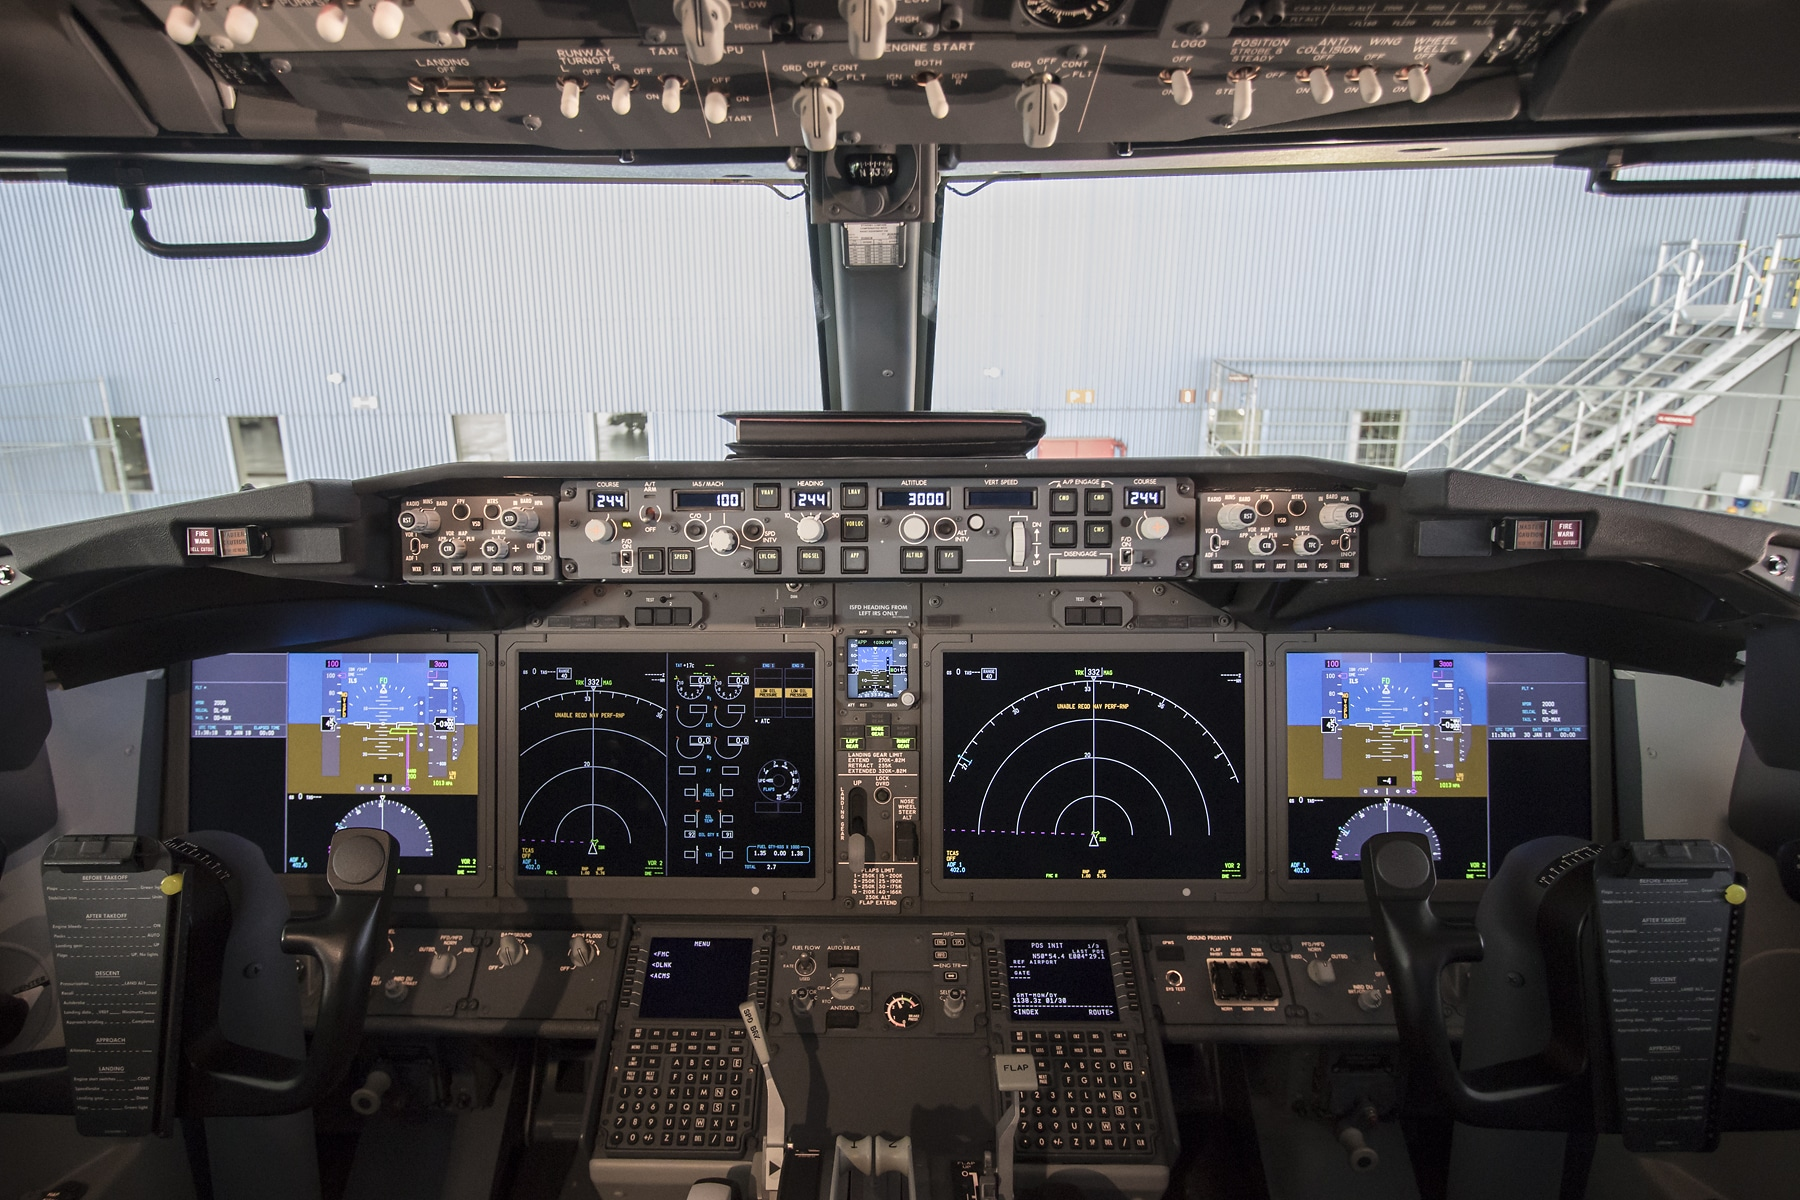 An Automatic Stall-Prevention System (MCAS) is not included in the Boeing  737MAX flight crew operations manual (FCOM)